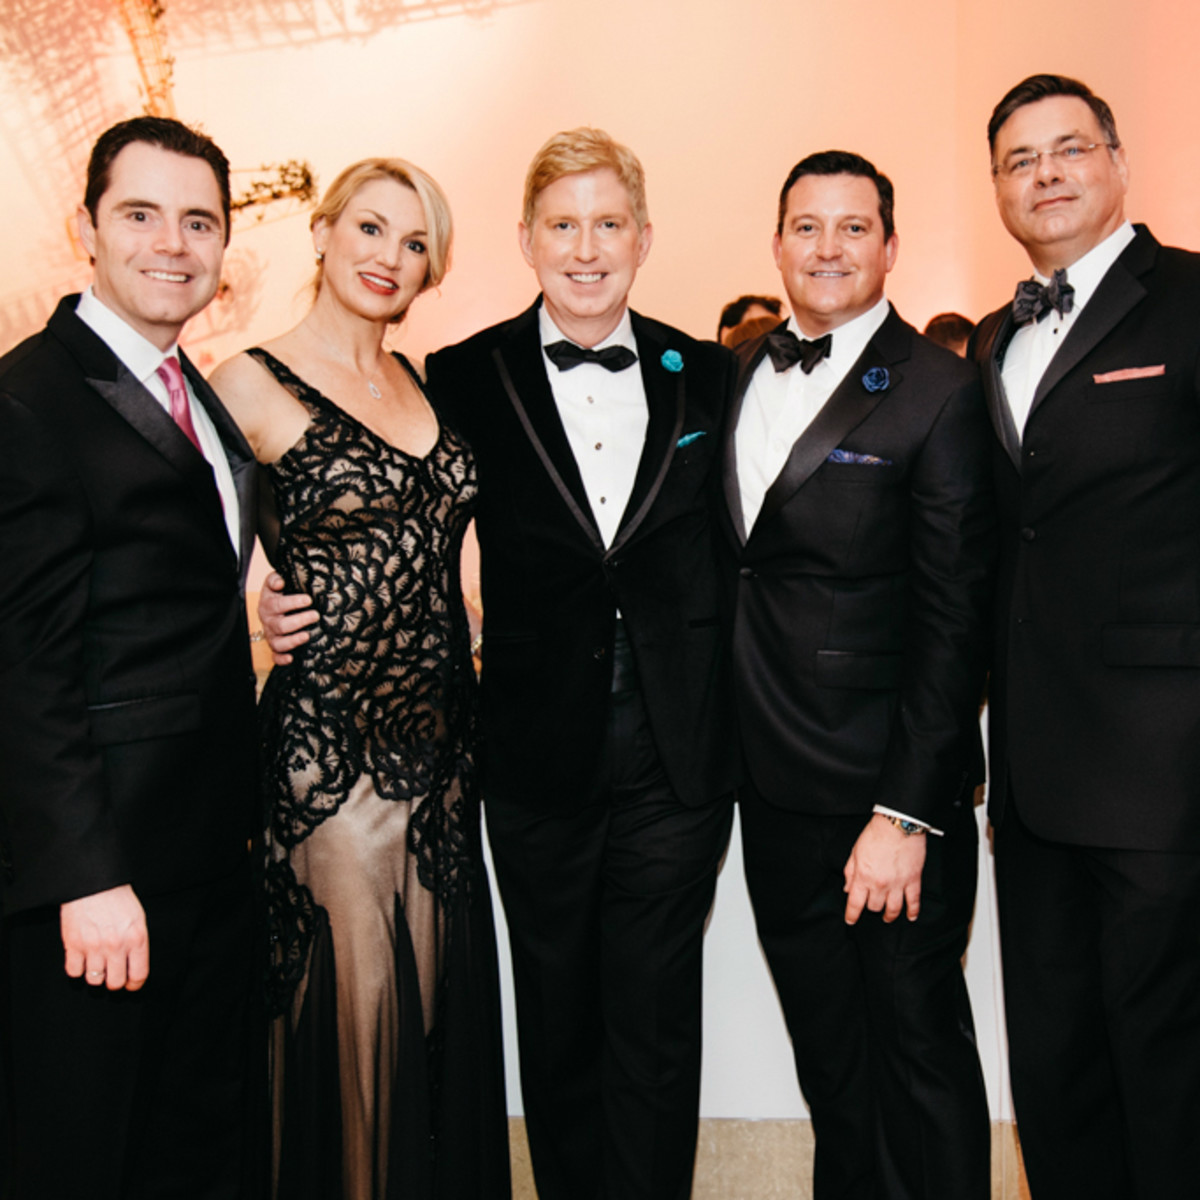 Blanton Museum Art on the Edge gala February 2016 Rob Giardinelli Tobie Funte Flannery Lance Avery Morgan Louis Suebe Dr. Alan Stevens